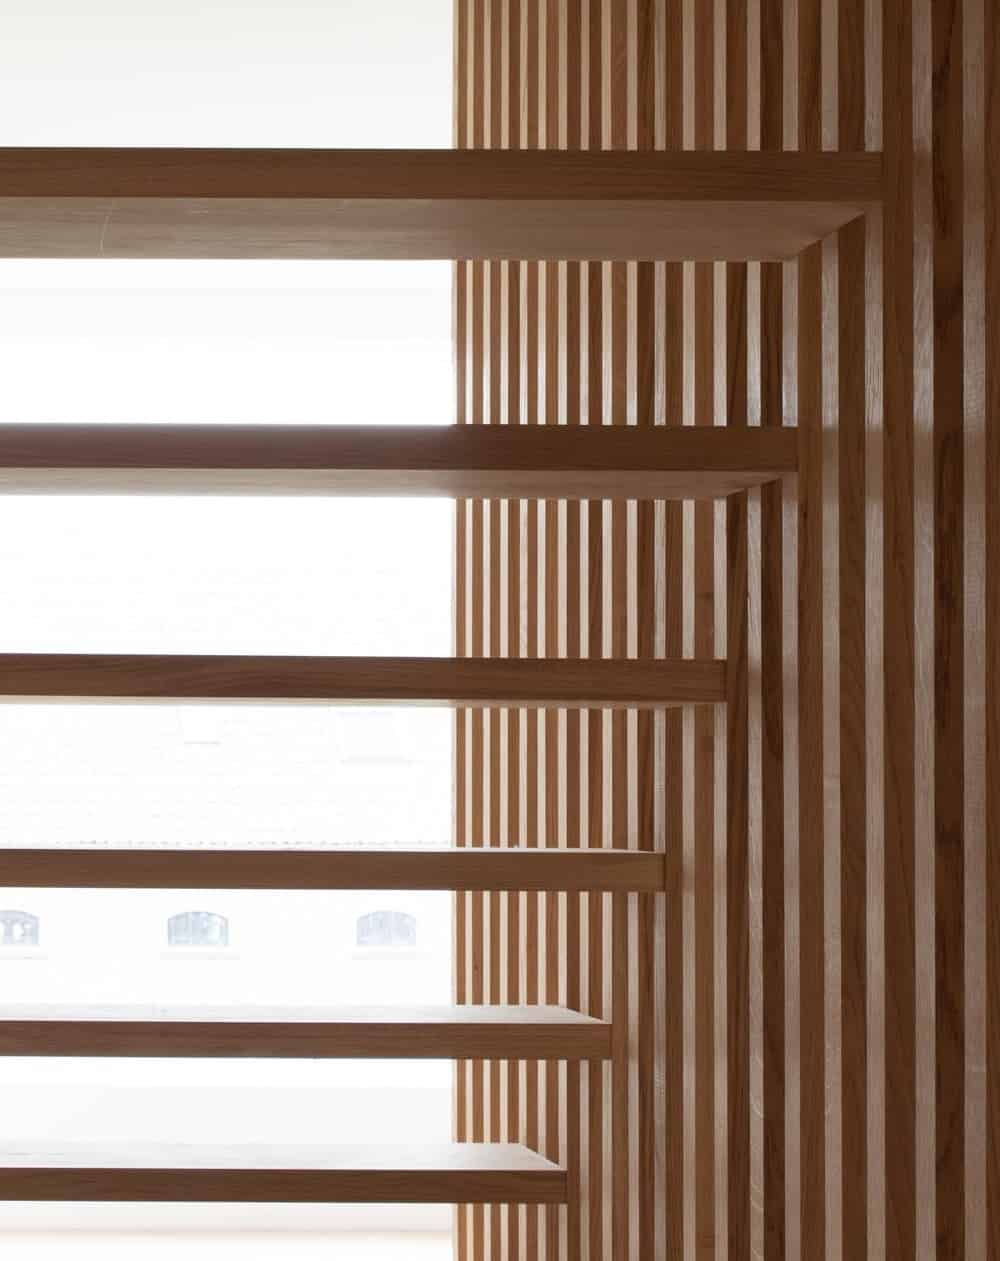 This is the other side of the white wall with a wooden slat wall that is see through and matches the tone of the steps.